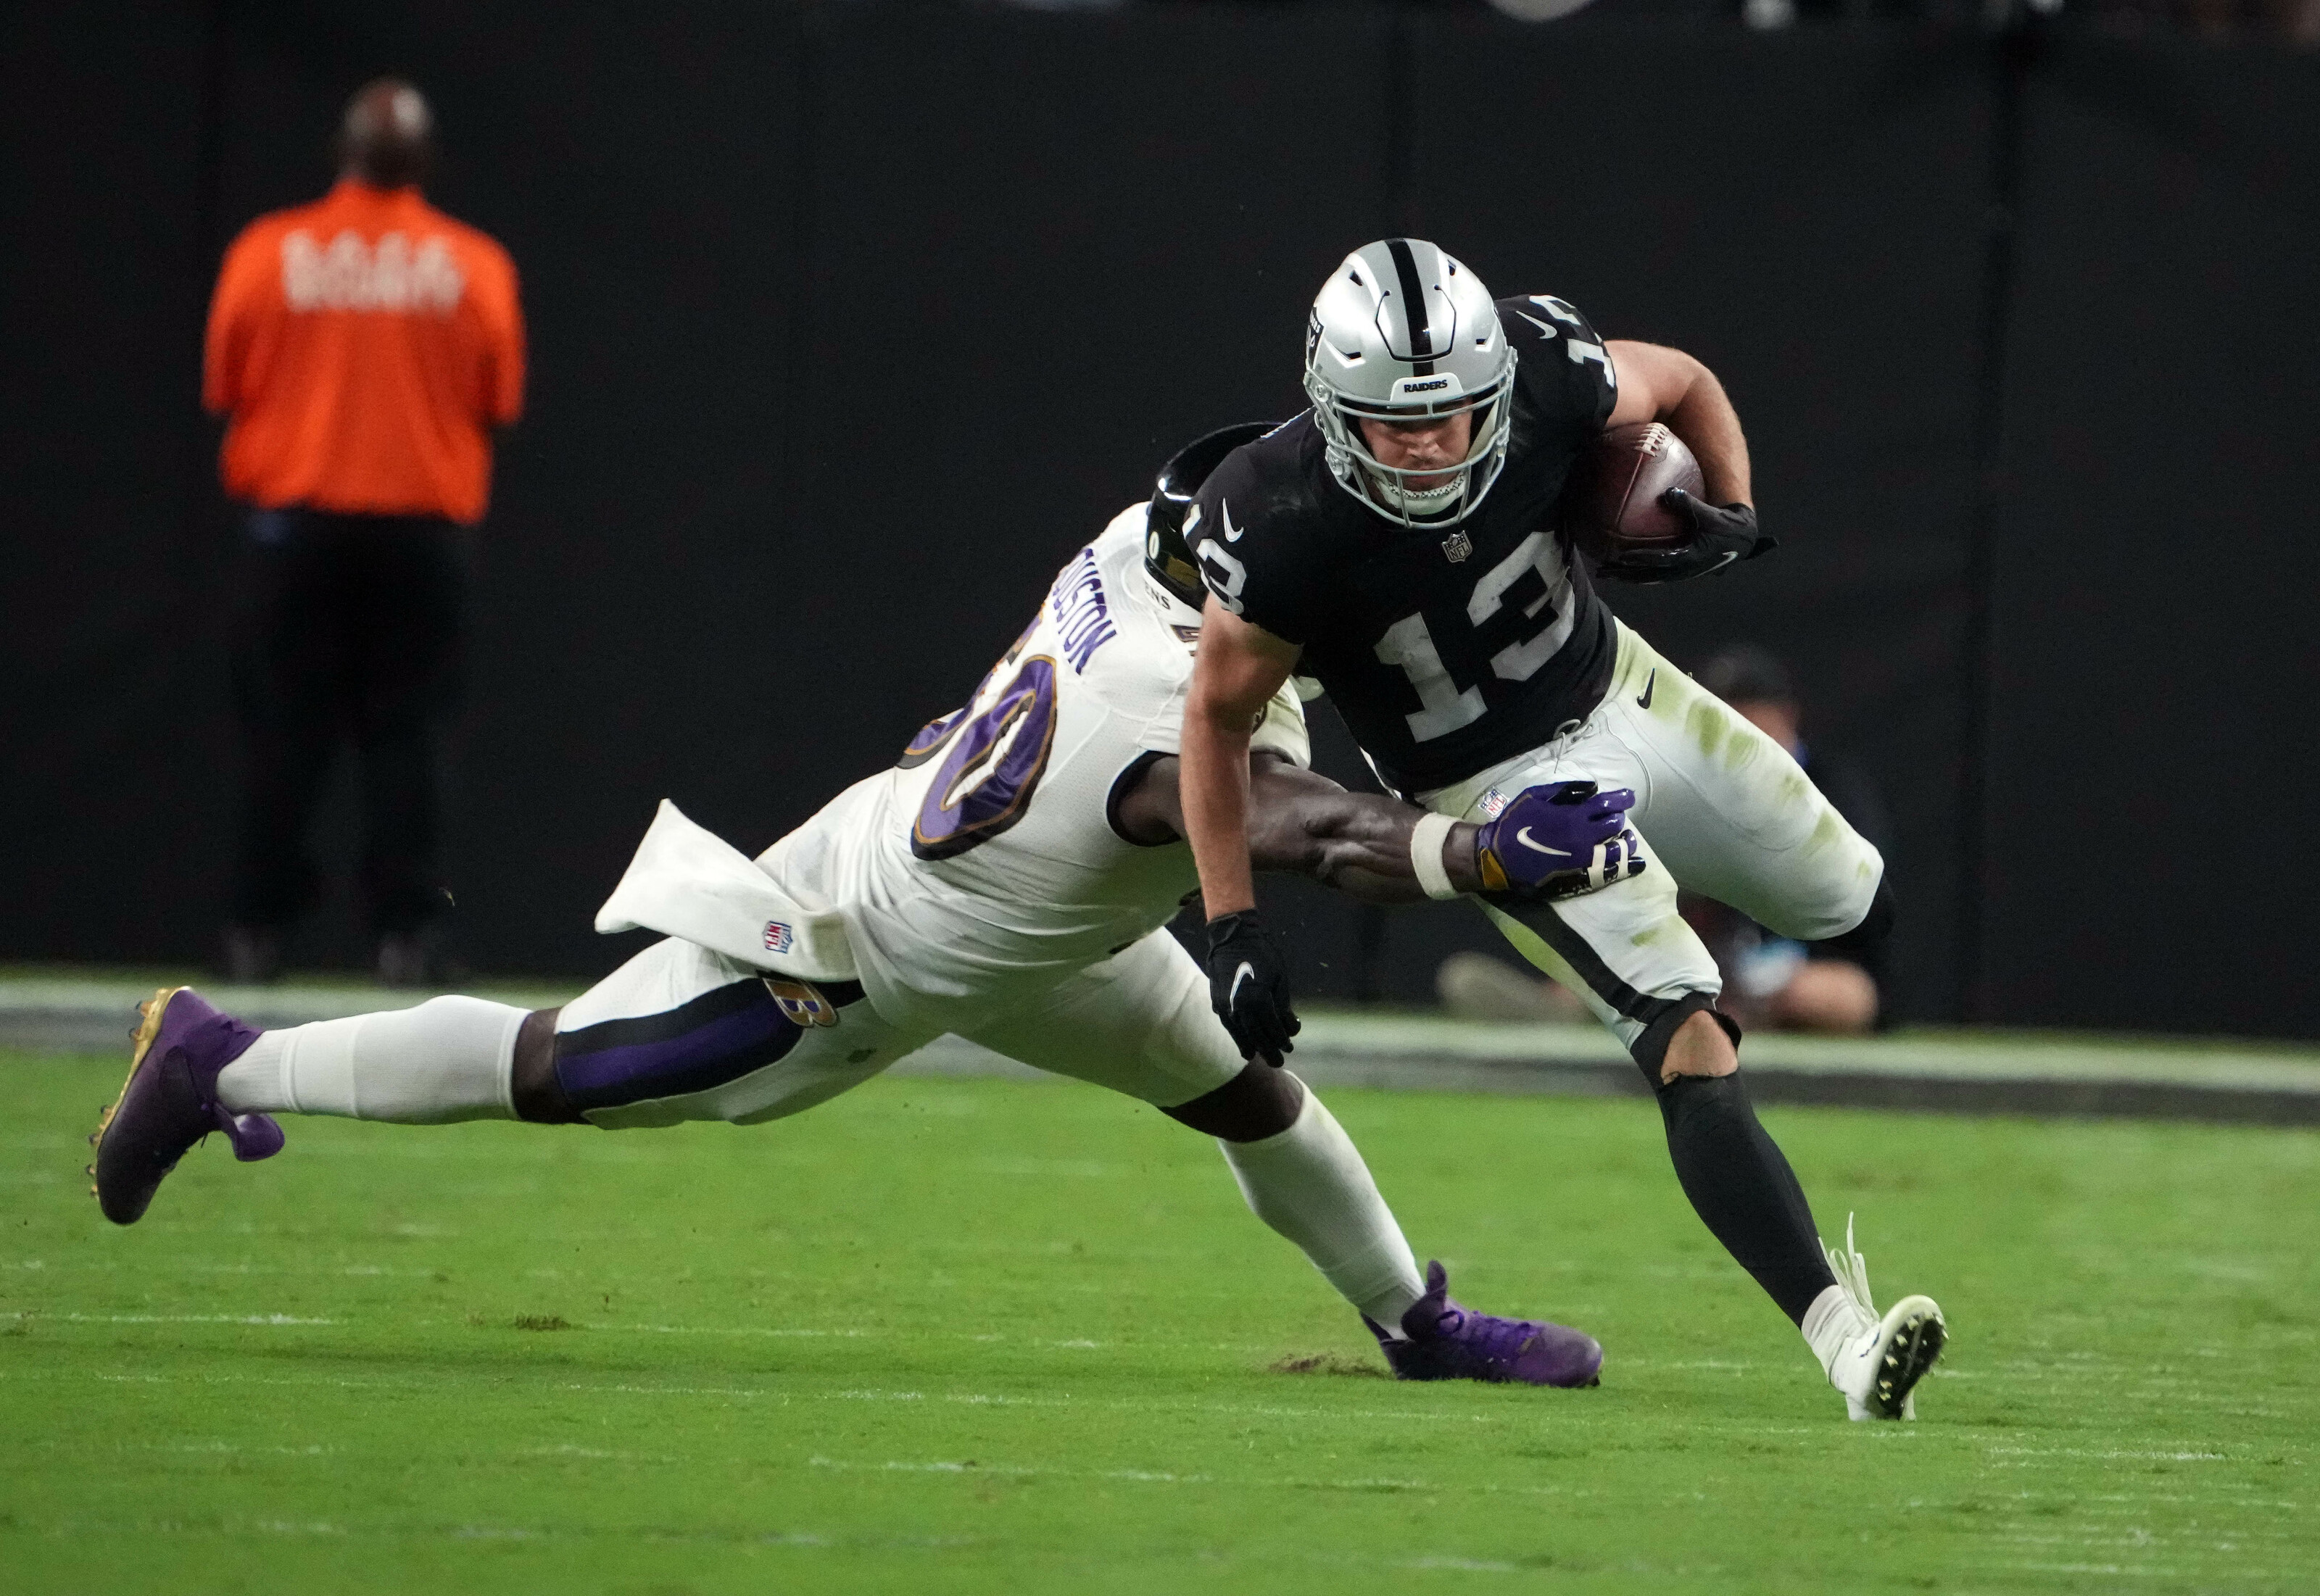 Raiders Hunter Renfrow poised to become a top NFL slot receiver